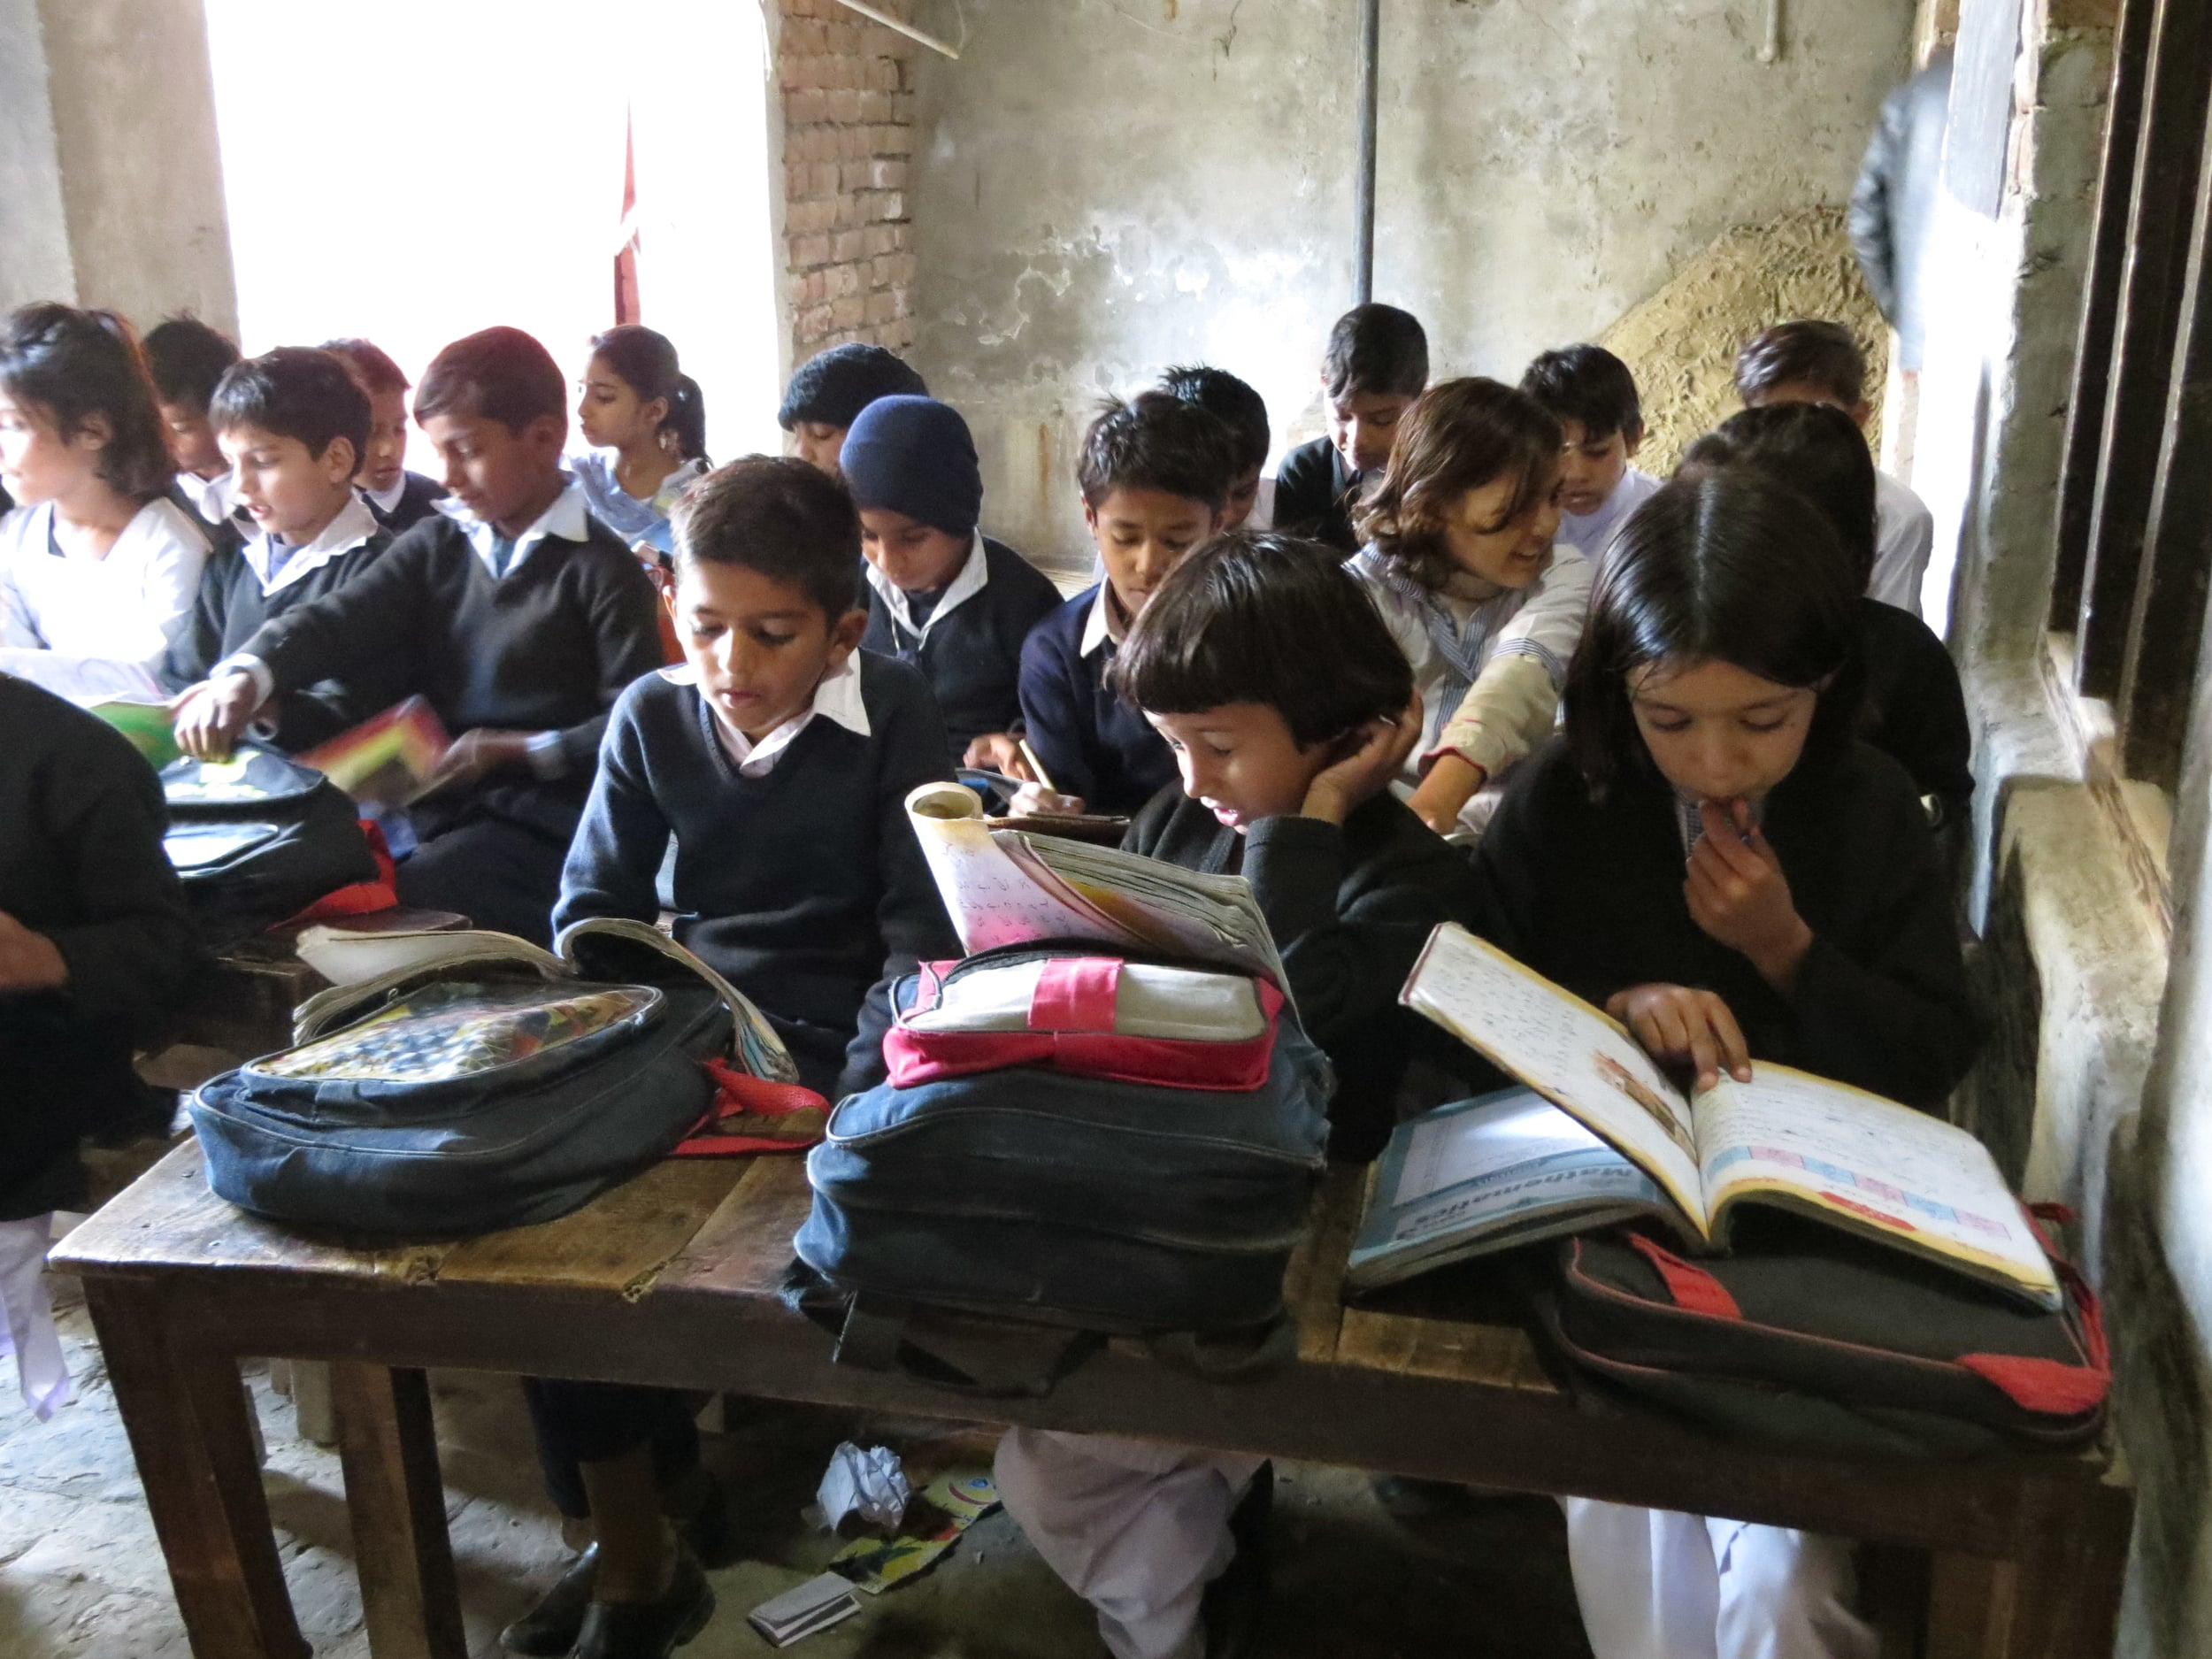 STUDENTS LISTEN AND REPEAT AS THEIR TEACHER READS ALOUD FROM A TEXTBOOK AT A SCHOOL OUTSIDE OF FAISALABAD, PAKISTAN. PHOTO BY BEENISH AHMED.